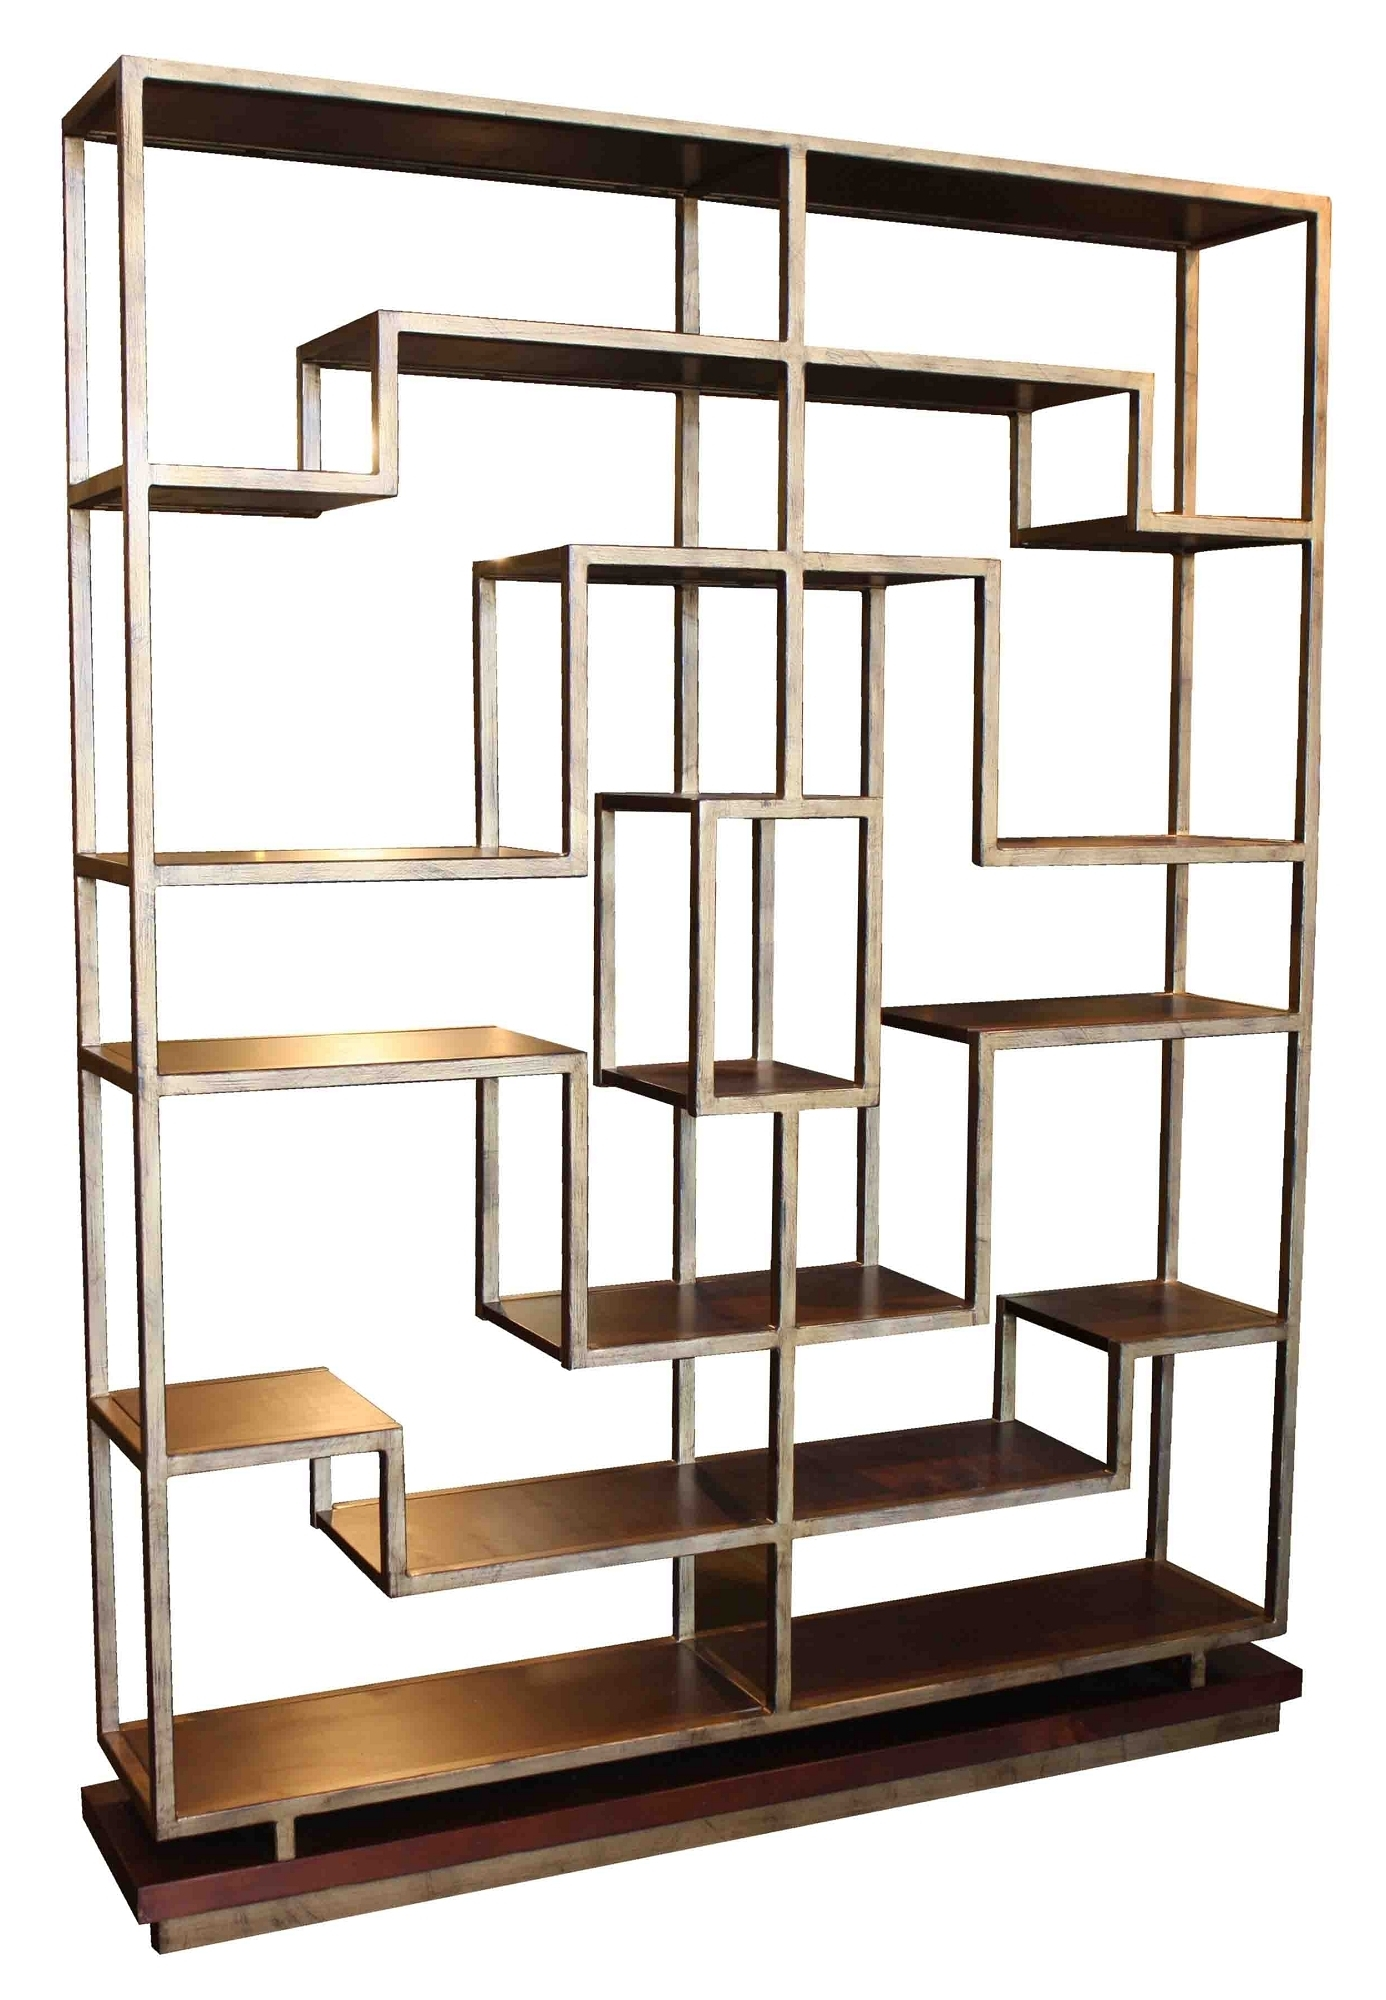 Metal And Wood Bookcases In Most Current Bookcases Ideas: Bookcases Wood Metal And Glass Crate And Barrel (View 7 of 15)